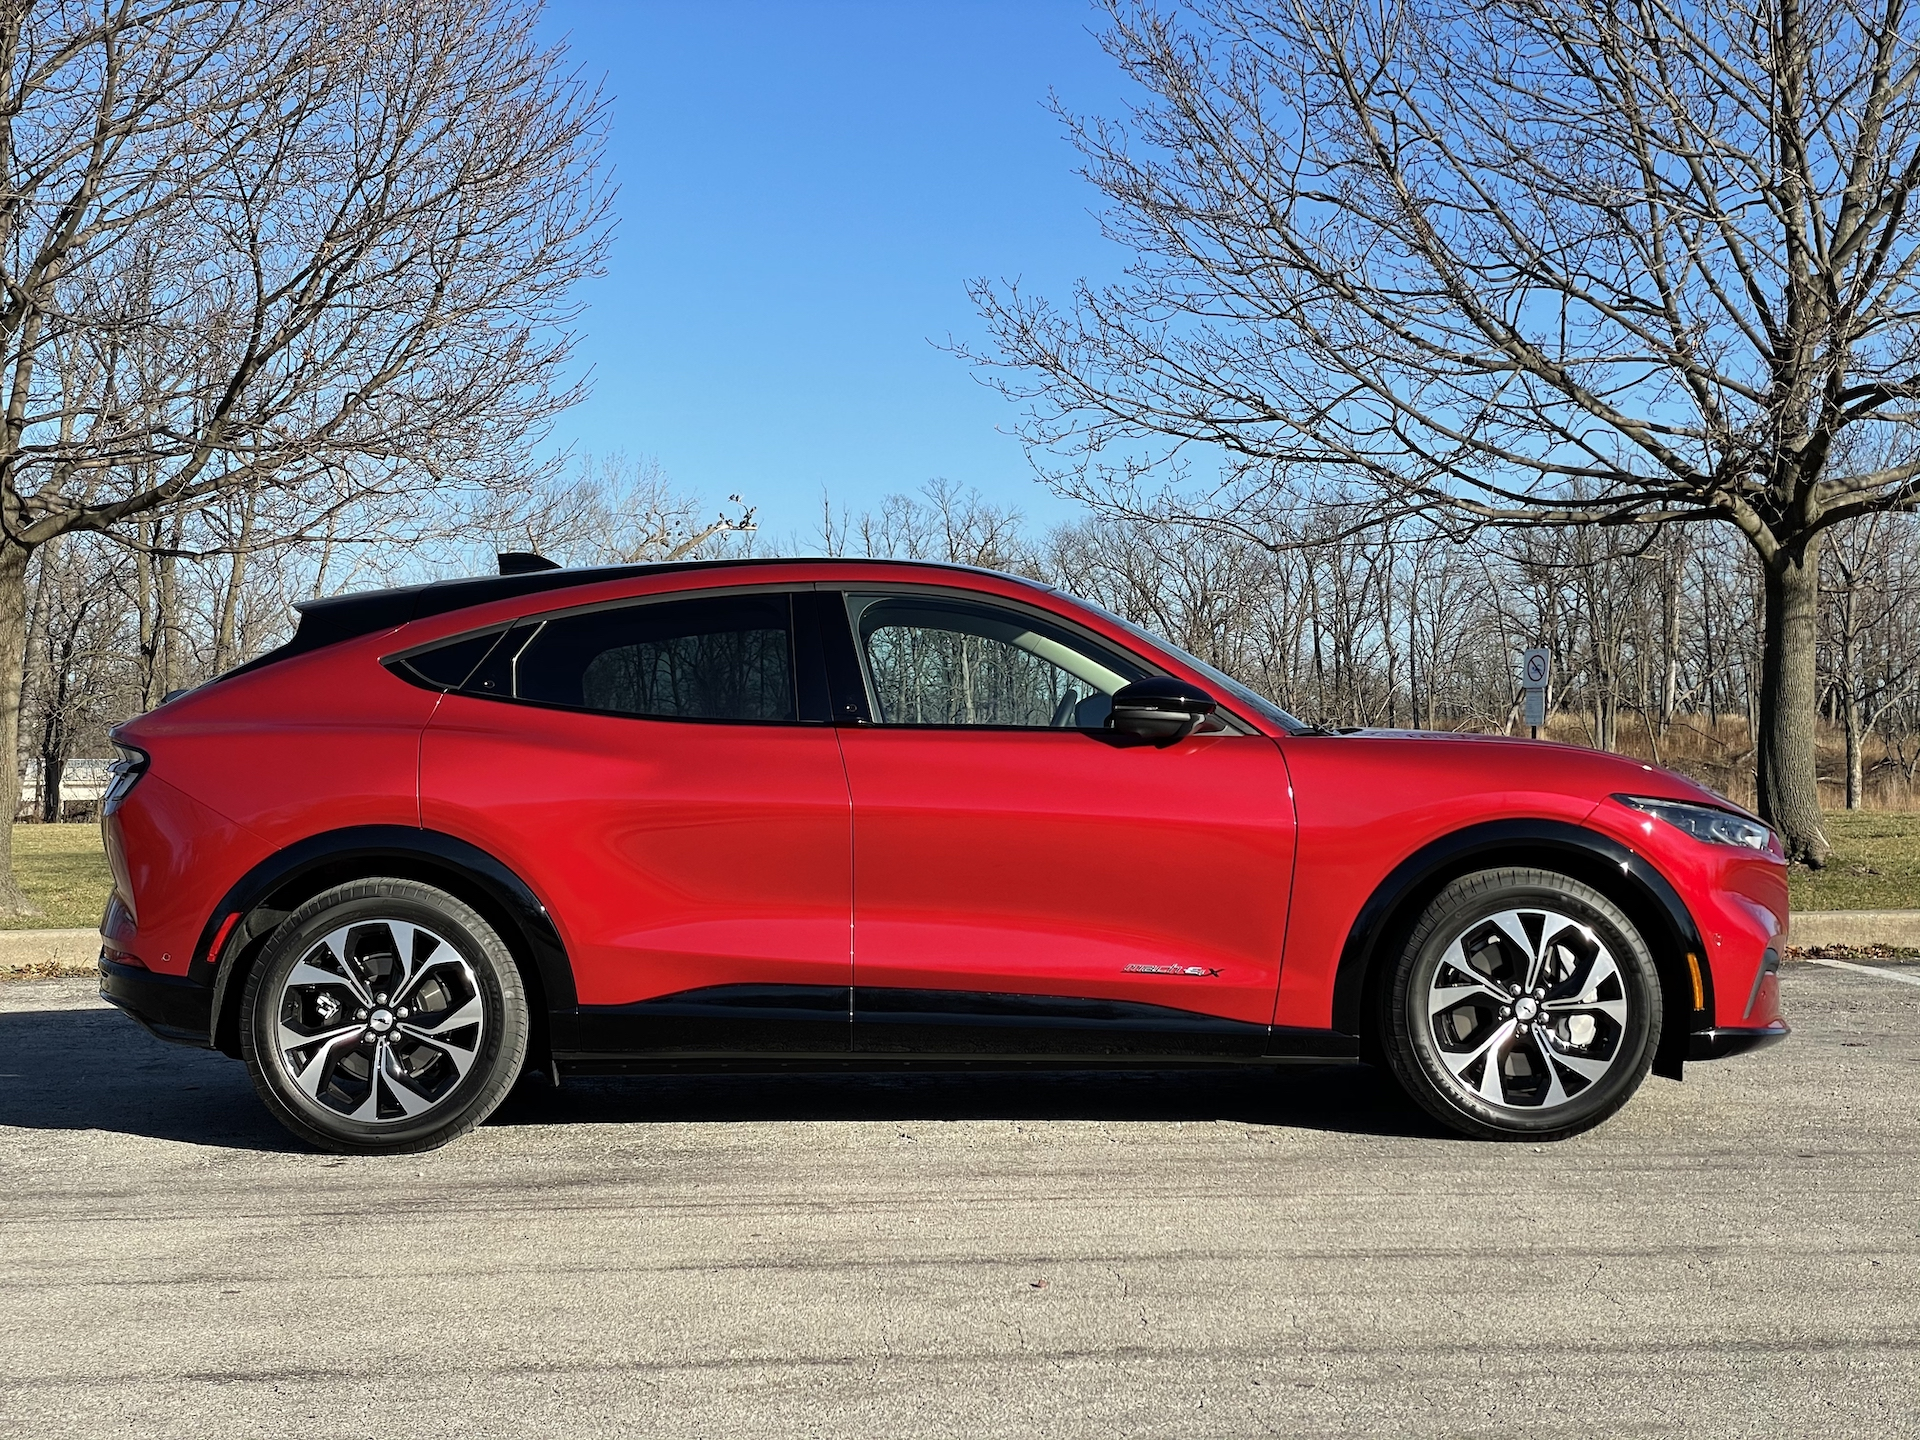 Ford Mustang Mach E Best Crossover To Buy 2021